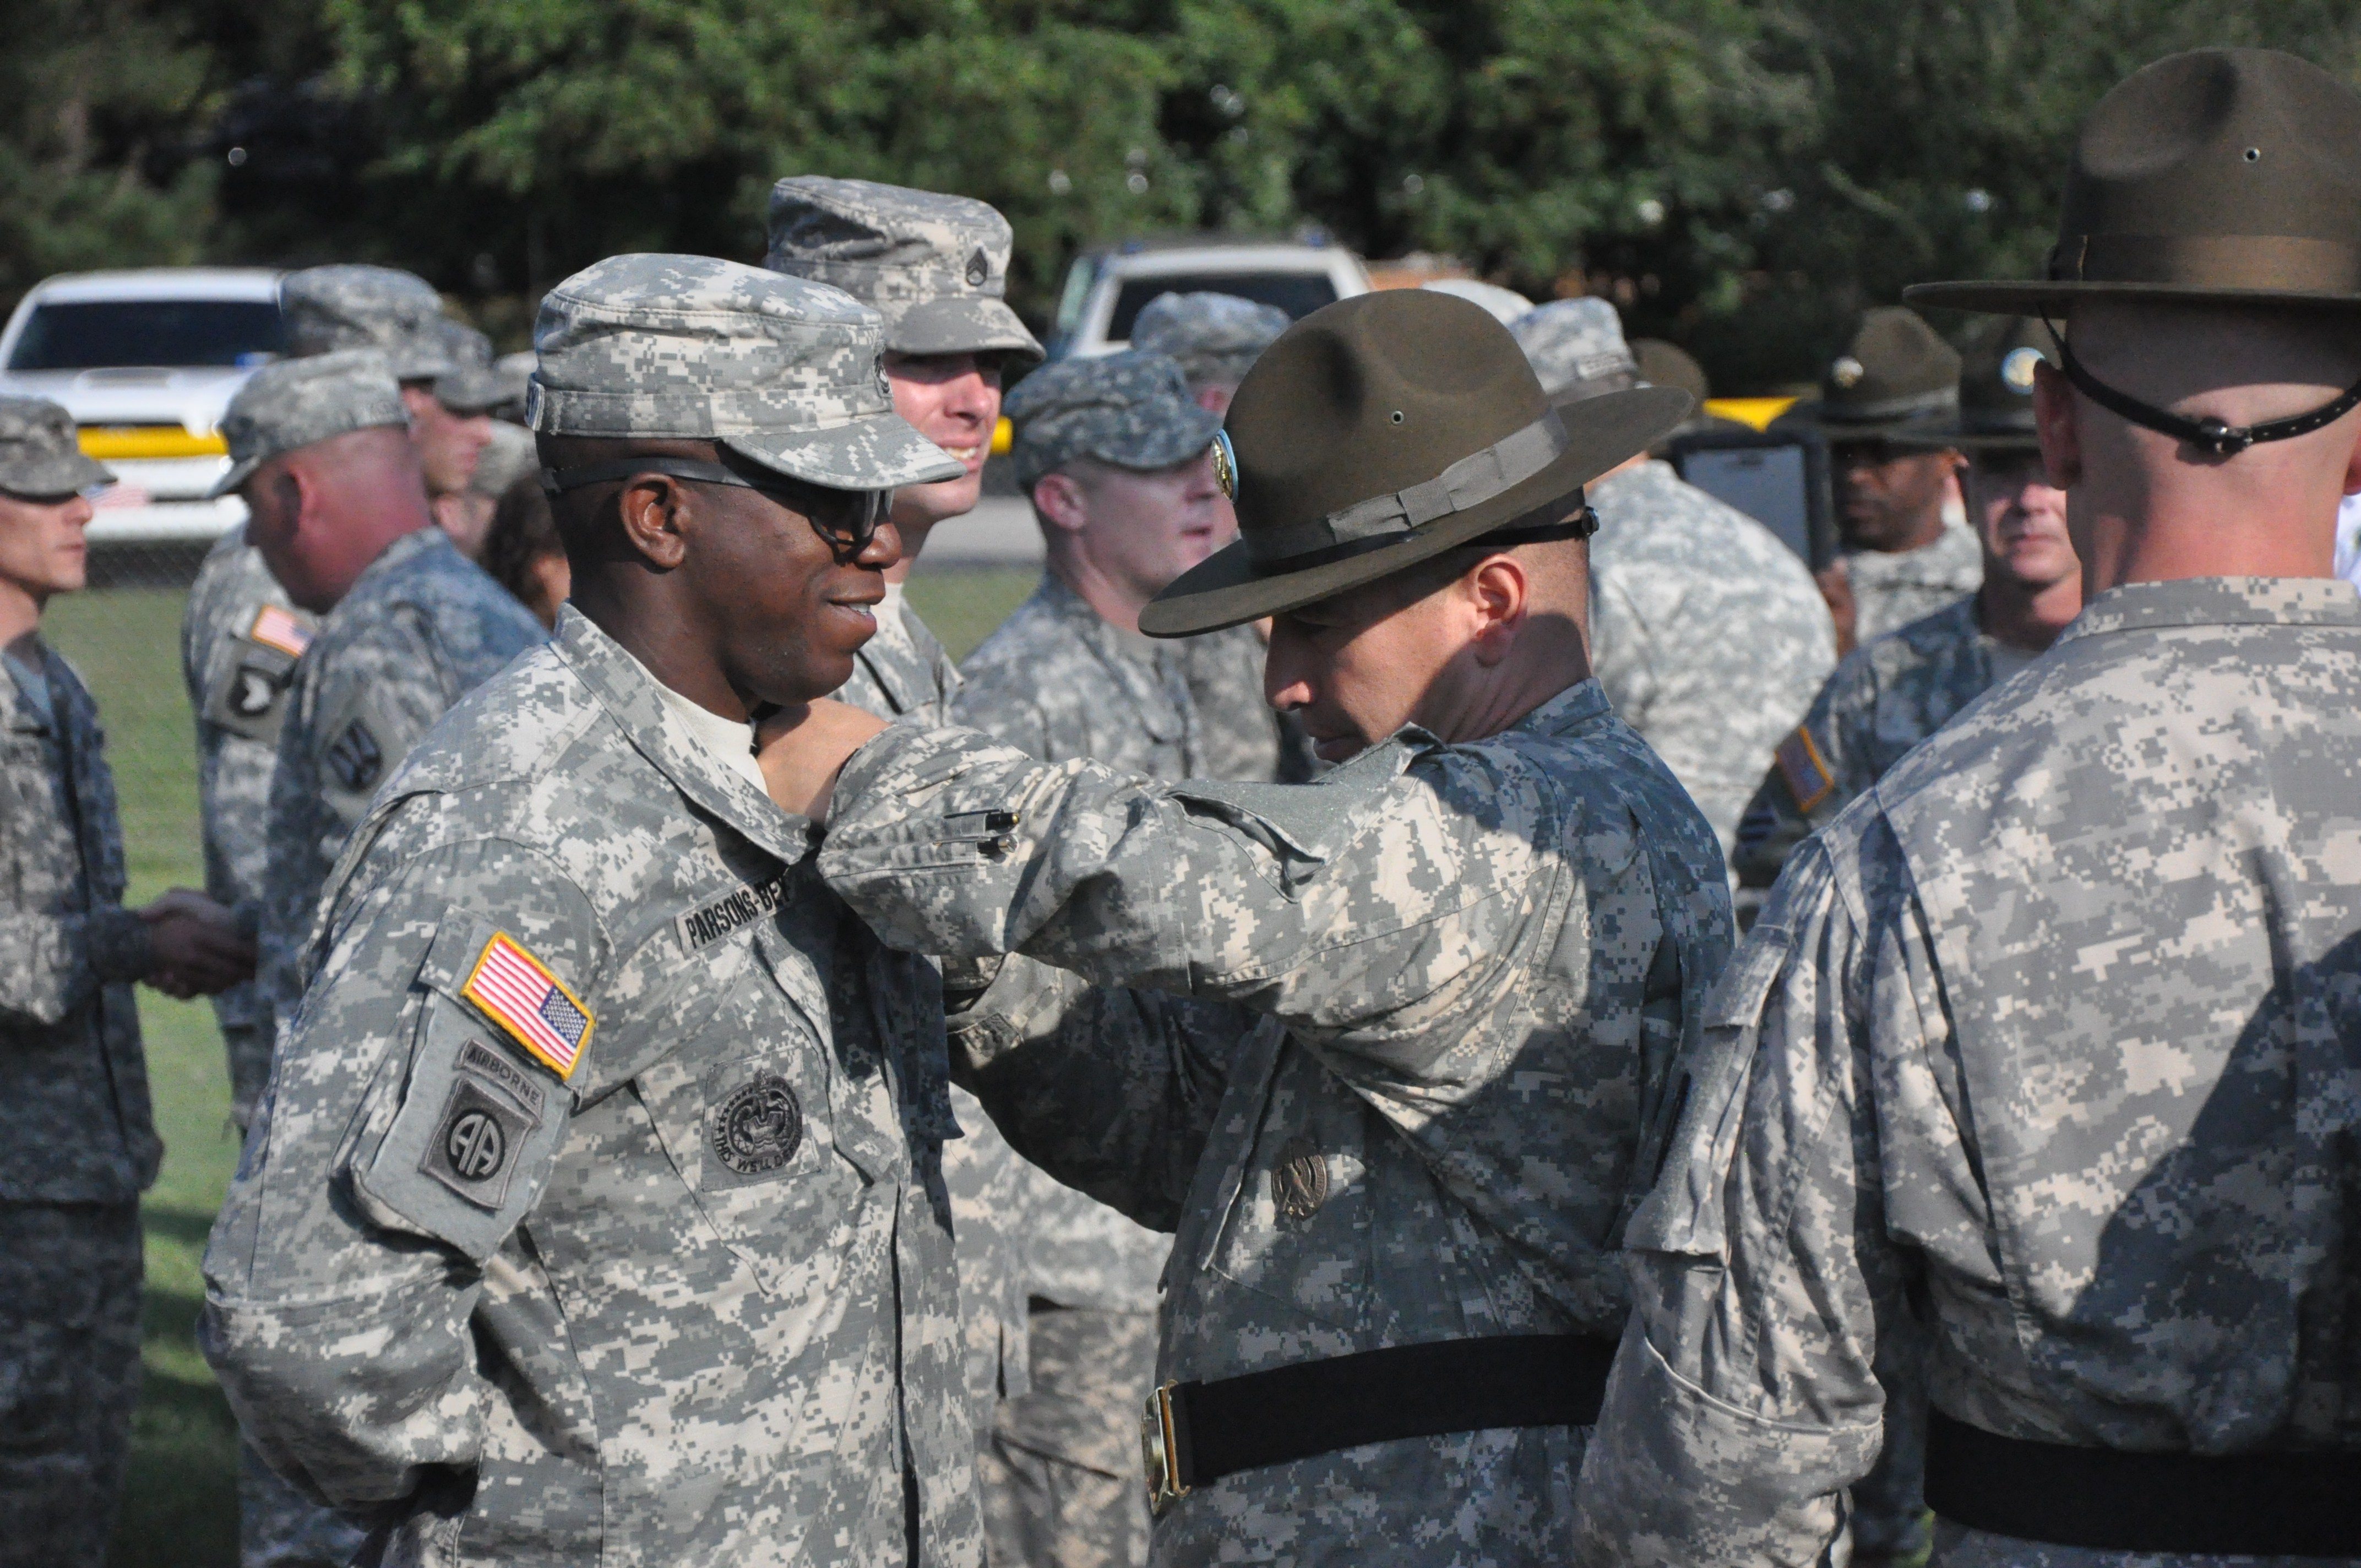 In an elite group | Article | The United States Army